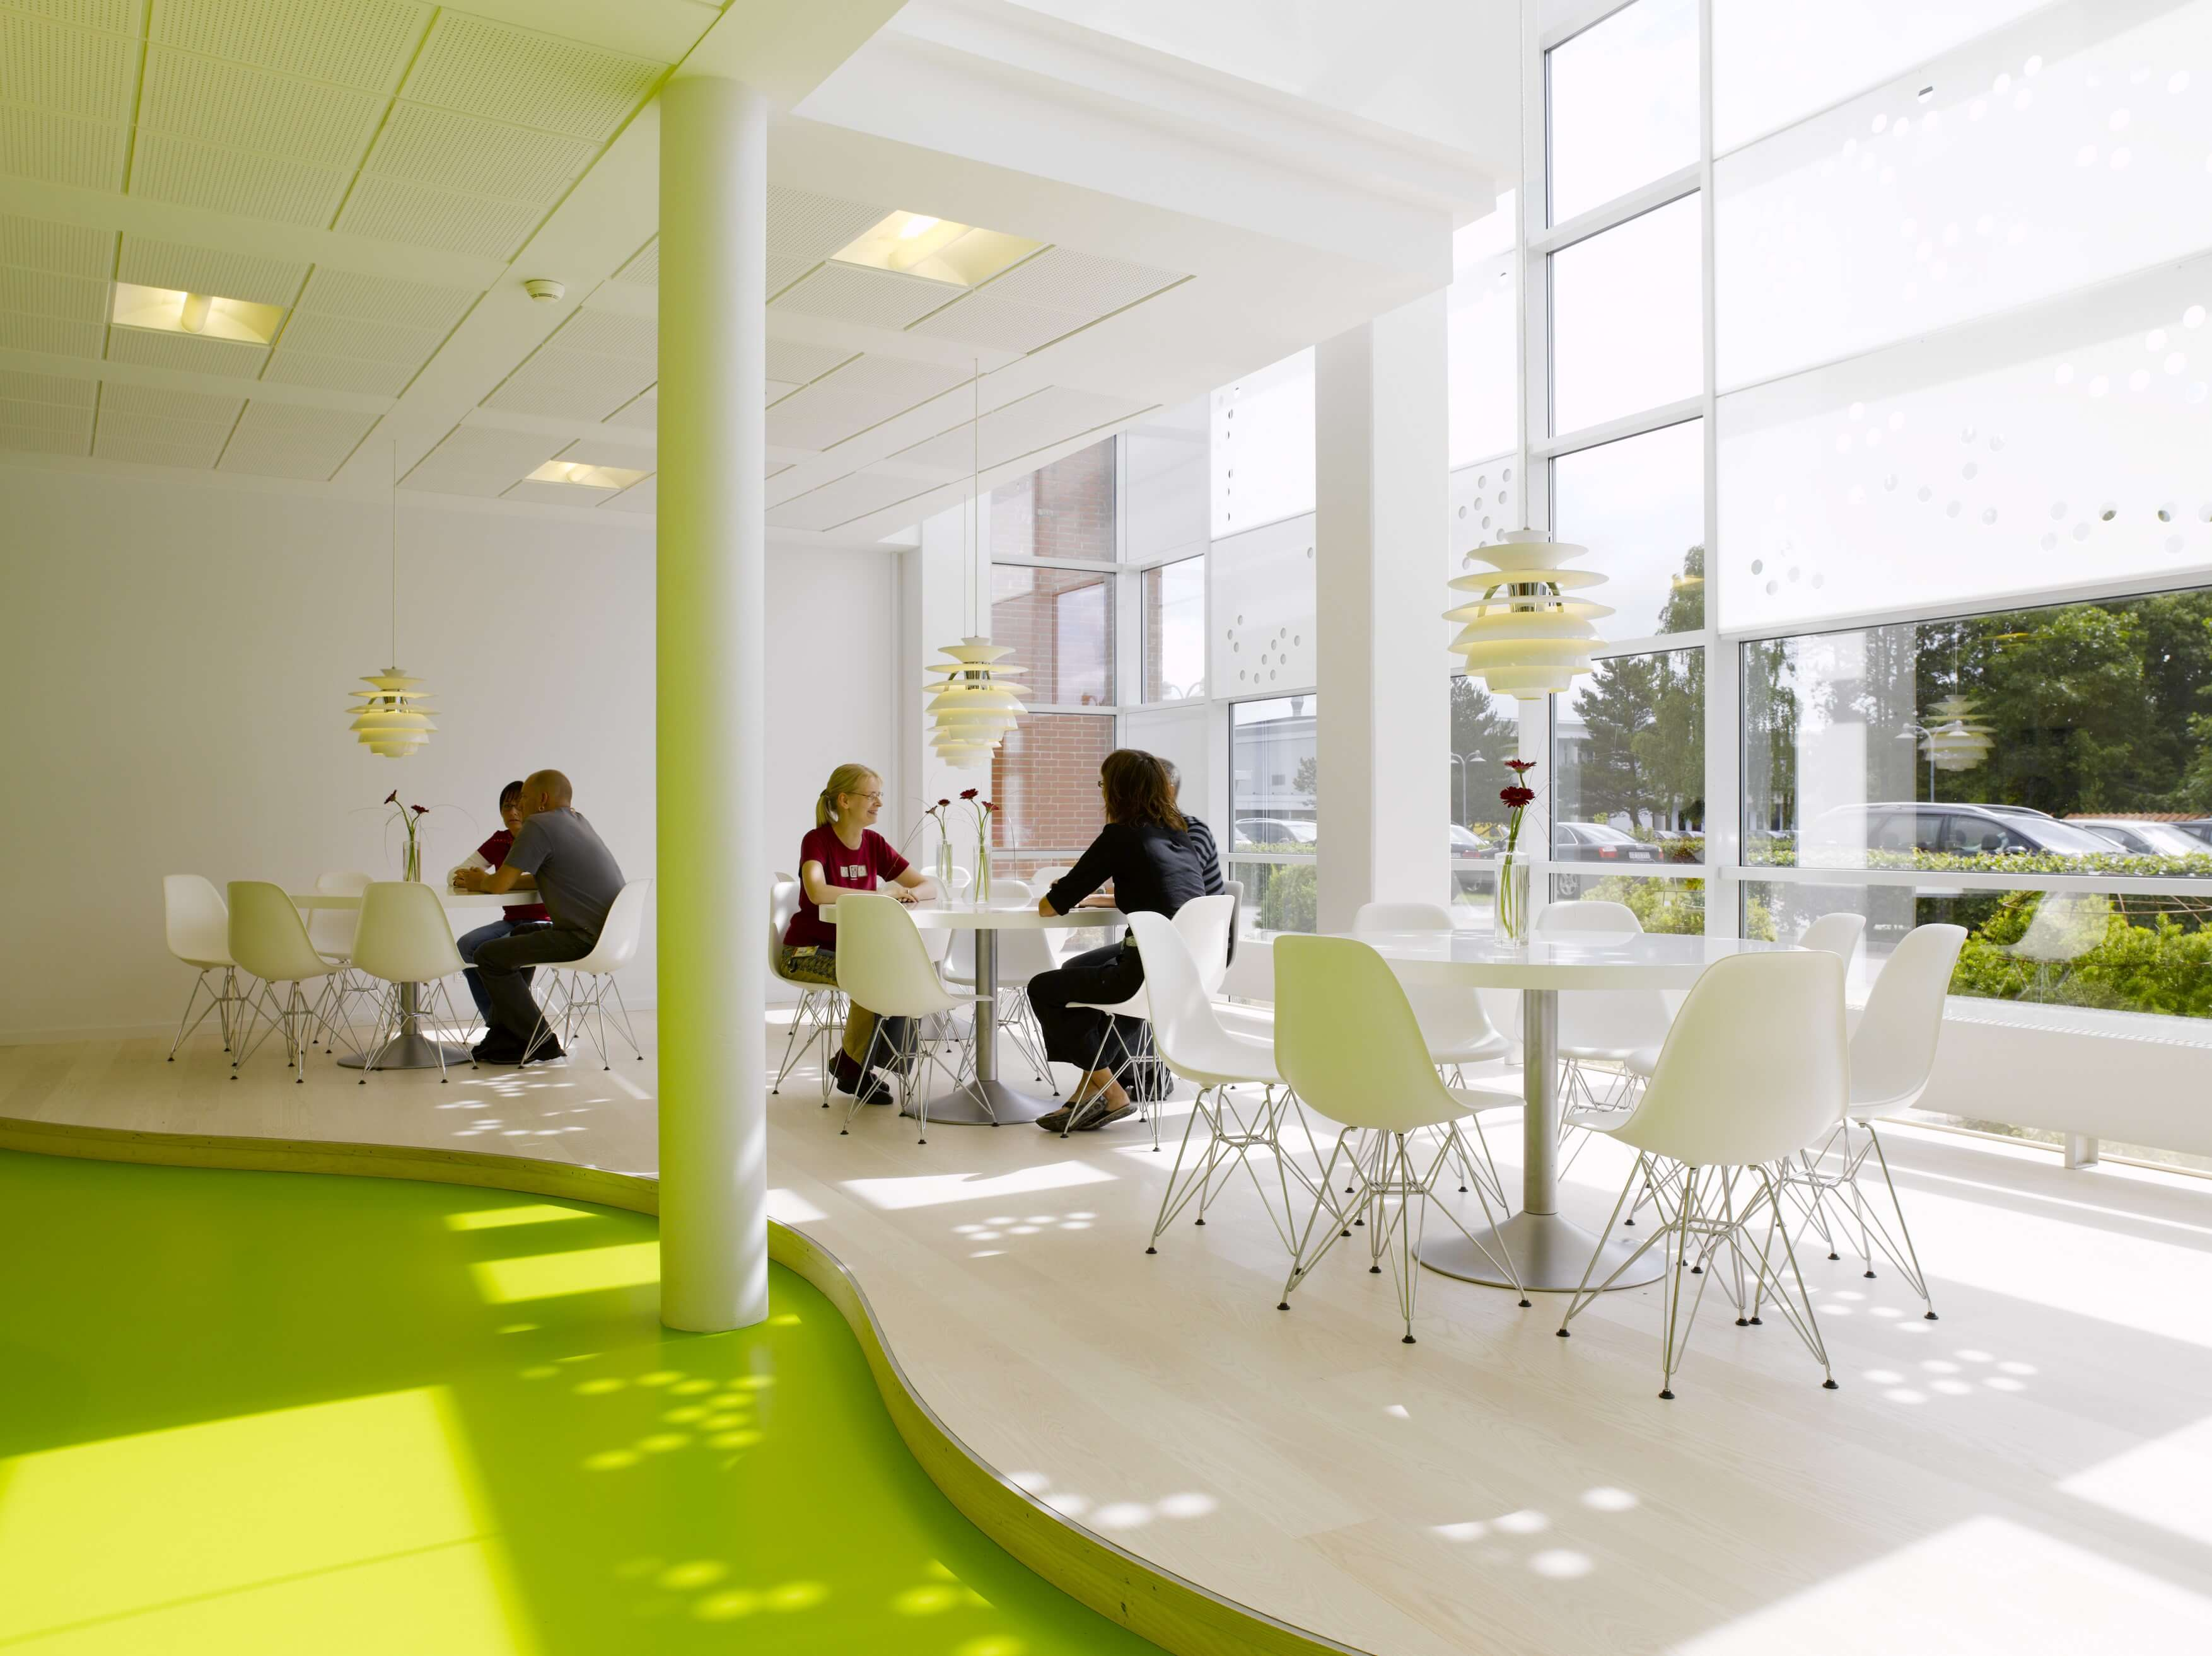 luxury-offices-interior-design-offices-interior-design-of-modern-office-with-green-floor-1